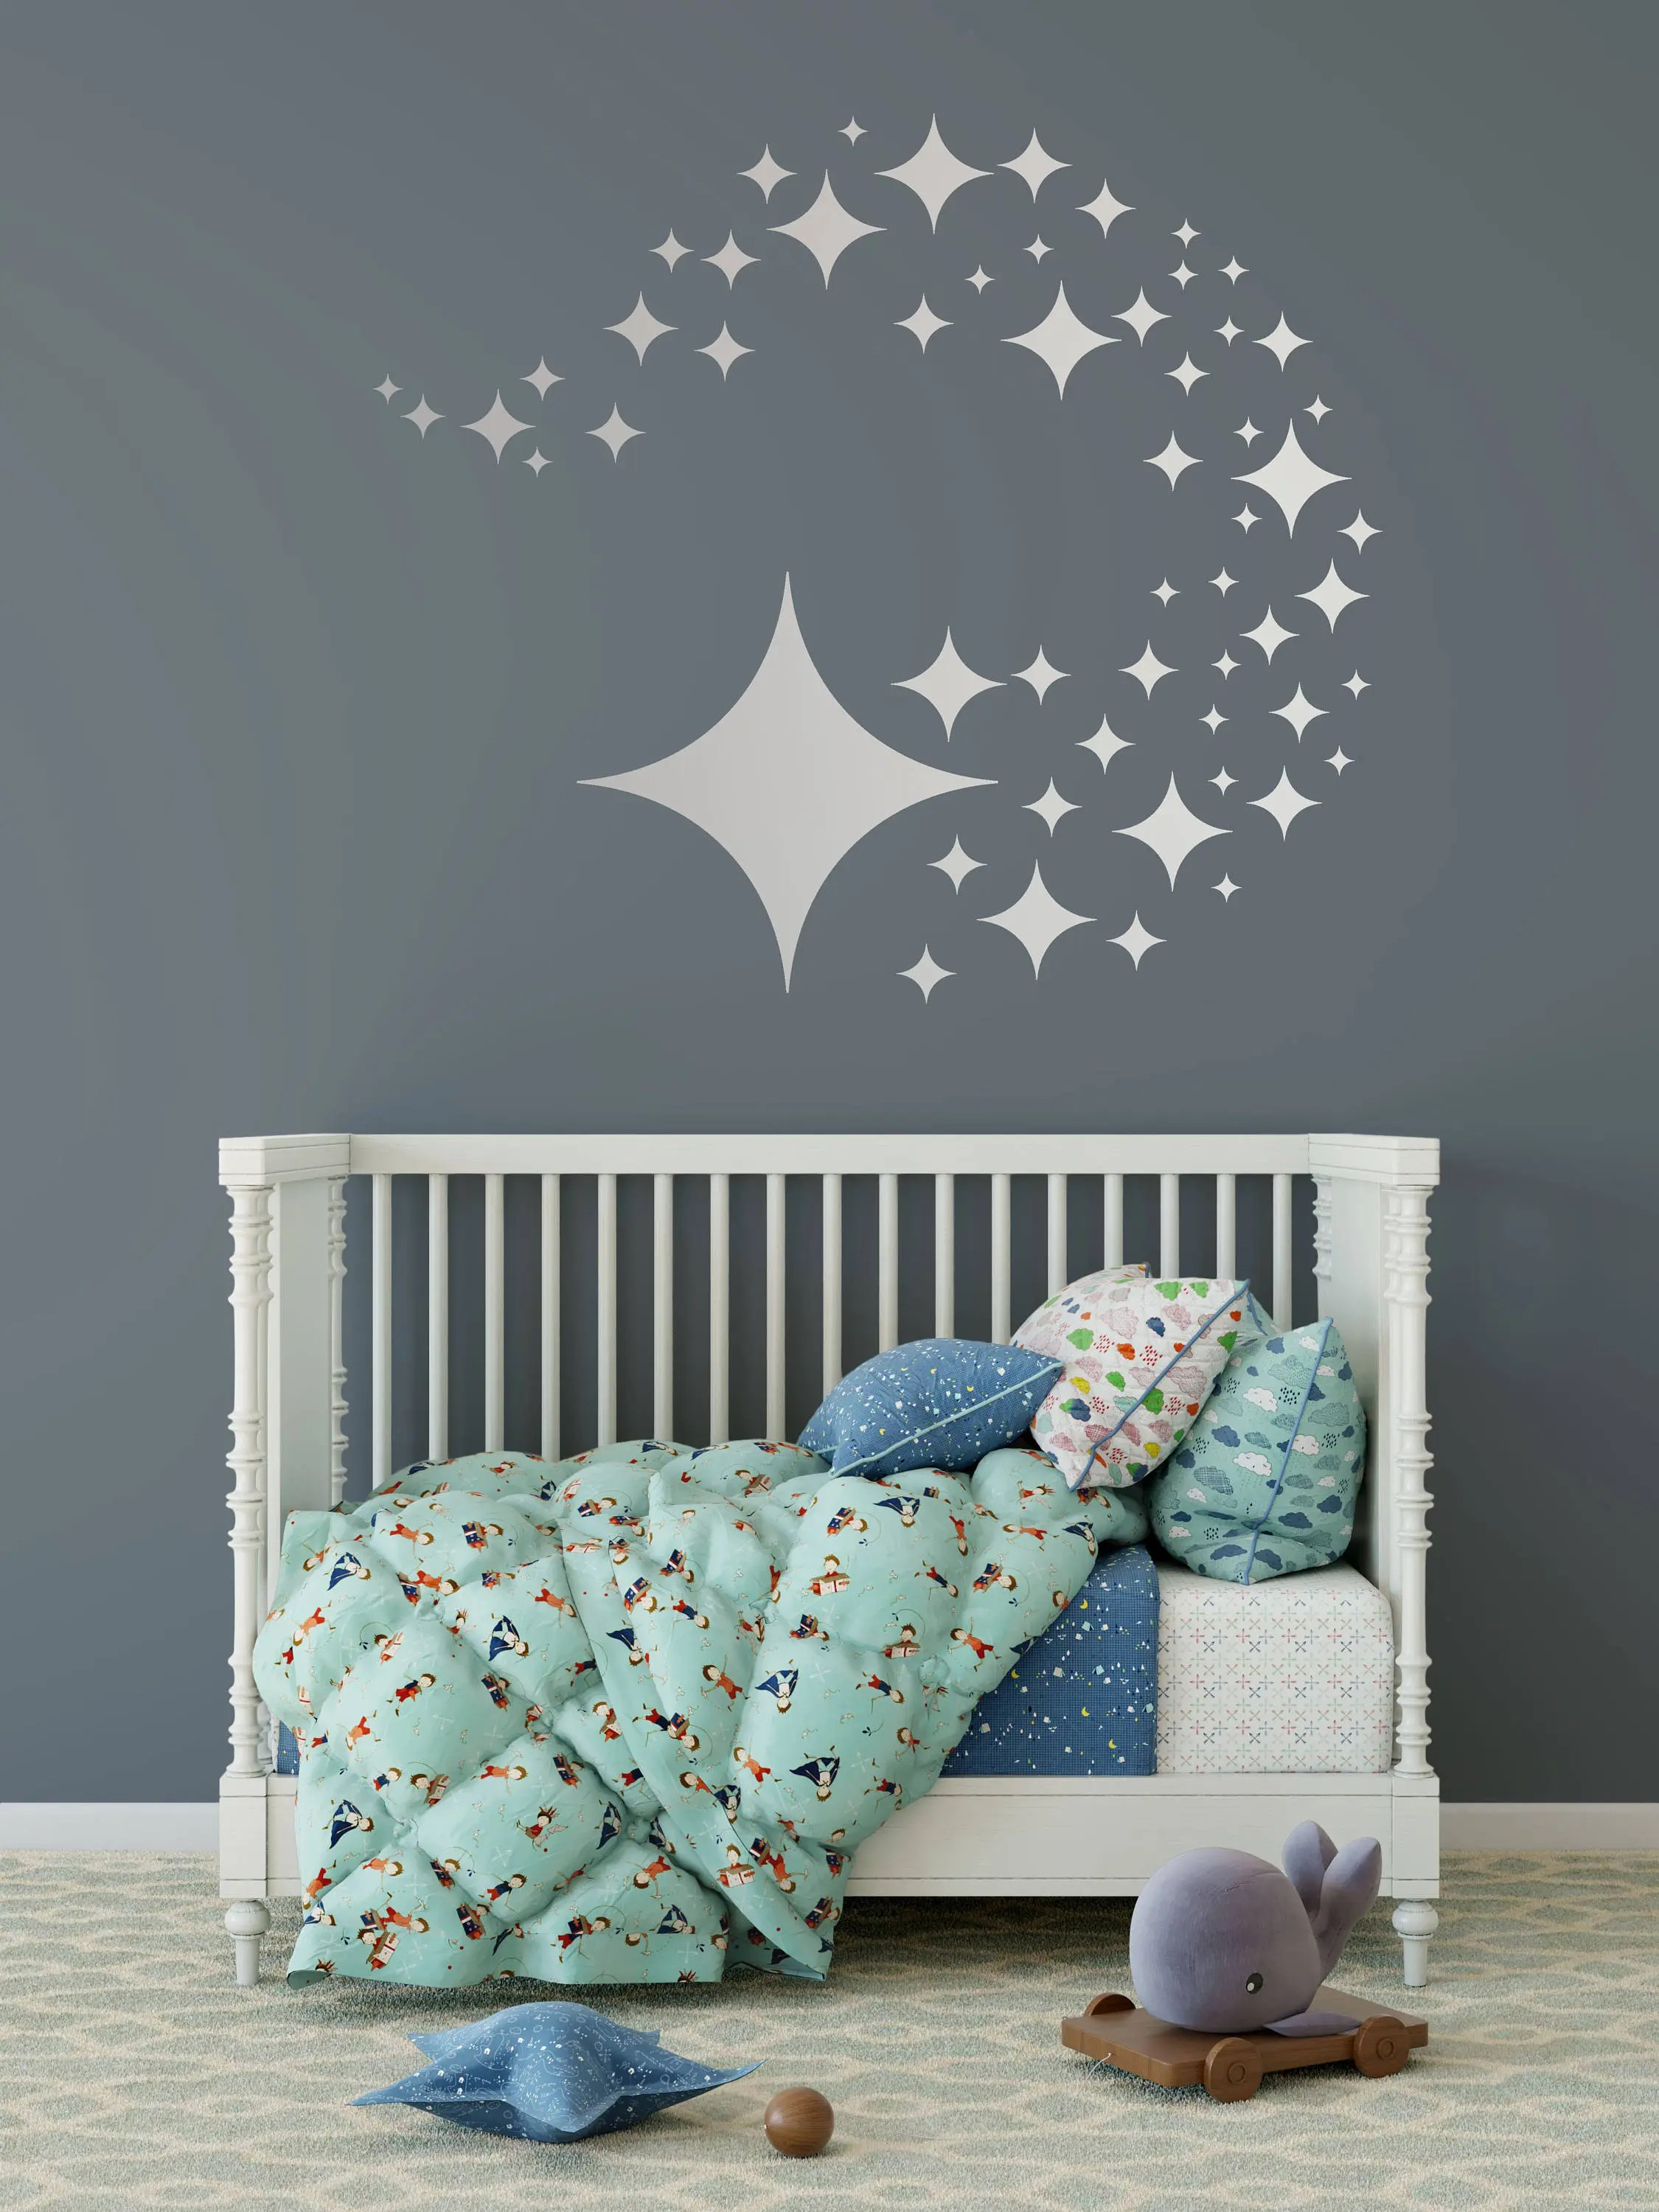 Considerable Star Wall Decals Variety Sizes Nursery Home Wall Sizes Starspattern Wall Decal Diamond Stars Decals Nursery Star Wall Decals Variety Sizes Nursery Home Wall Sizes baby Wall Decals For Nursery